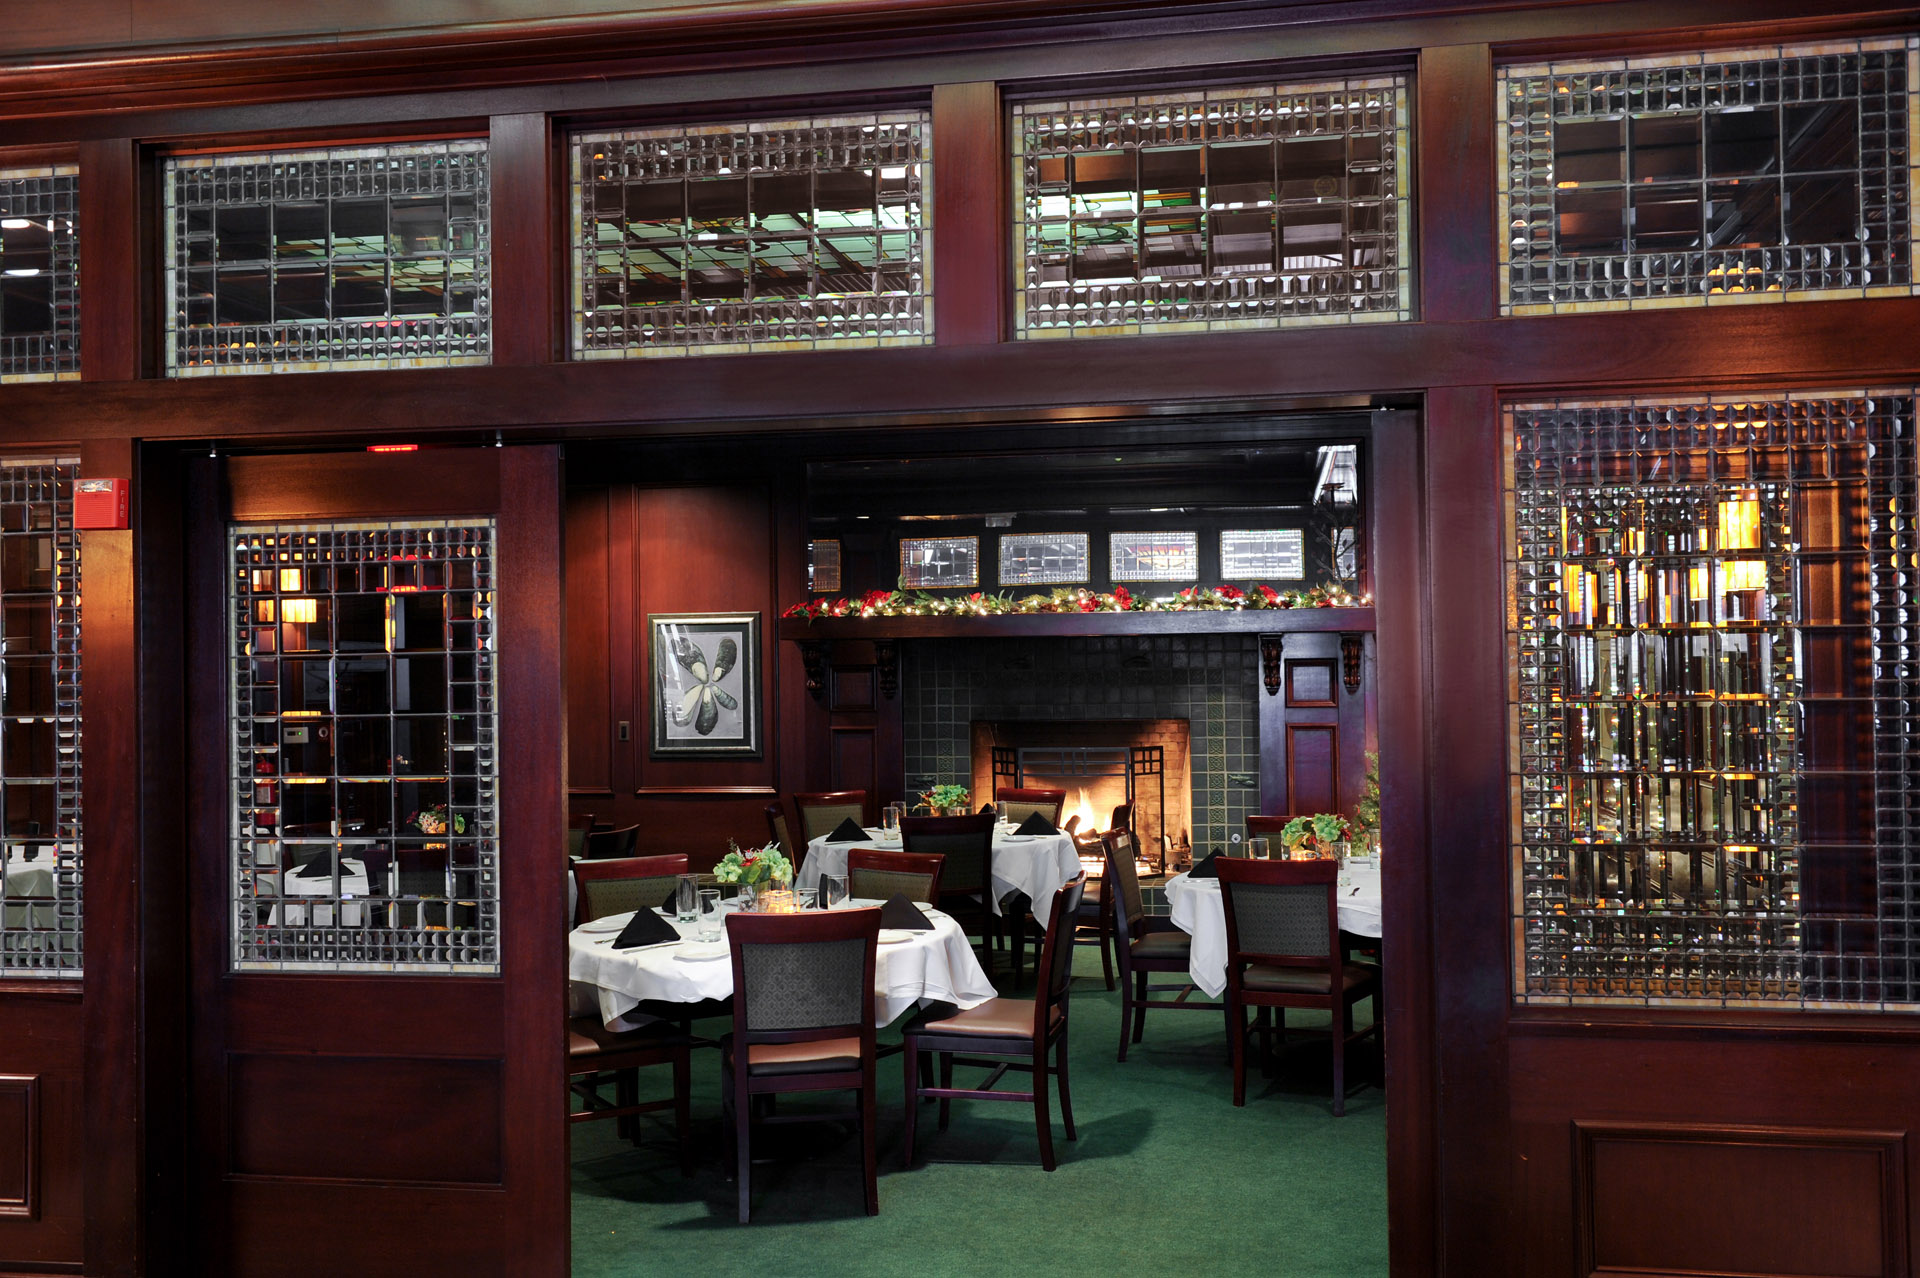 Best Detroit business photographer's website photography to showcase the intimacy of the restaurant McCormick and Schmick's various spaces within their restaurant location in Troy, Michigan.